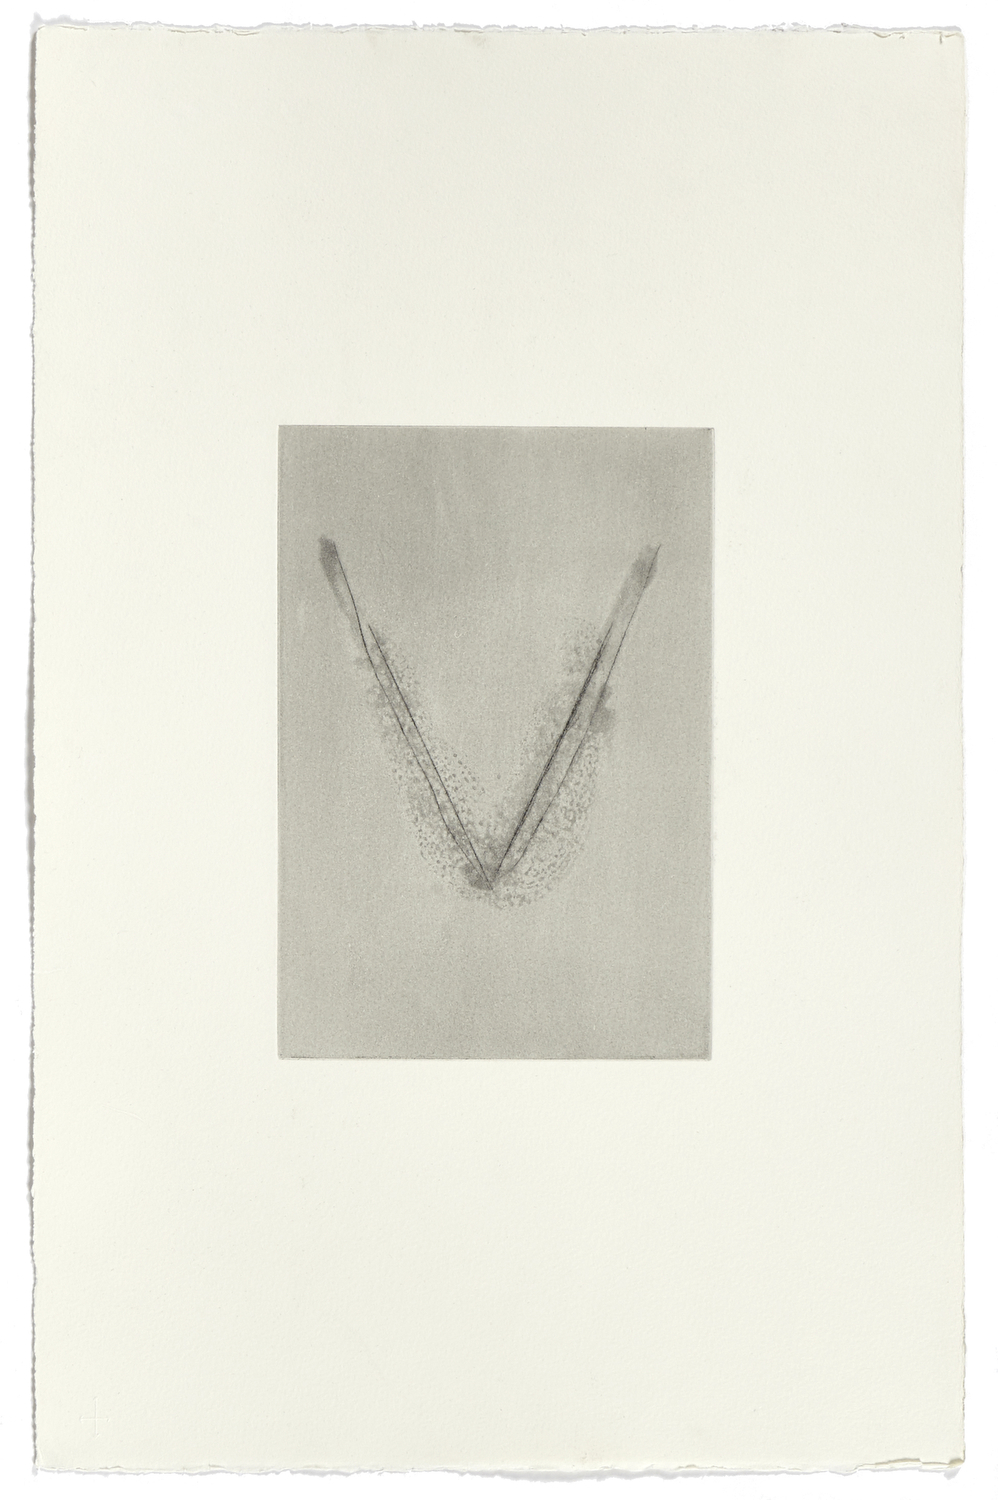 Untitled    2006 | 57 x 38 cm | Eau-forte and dry point | 1 print